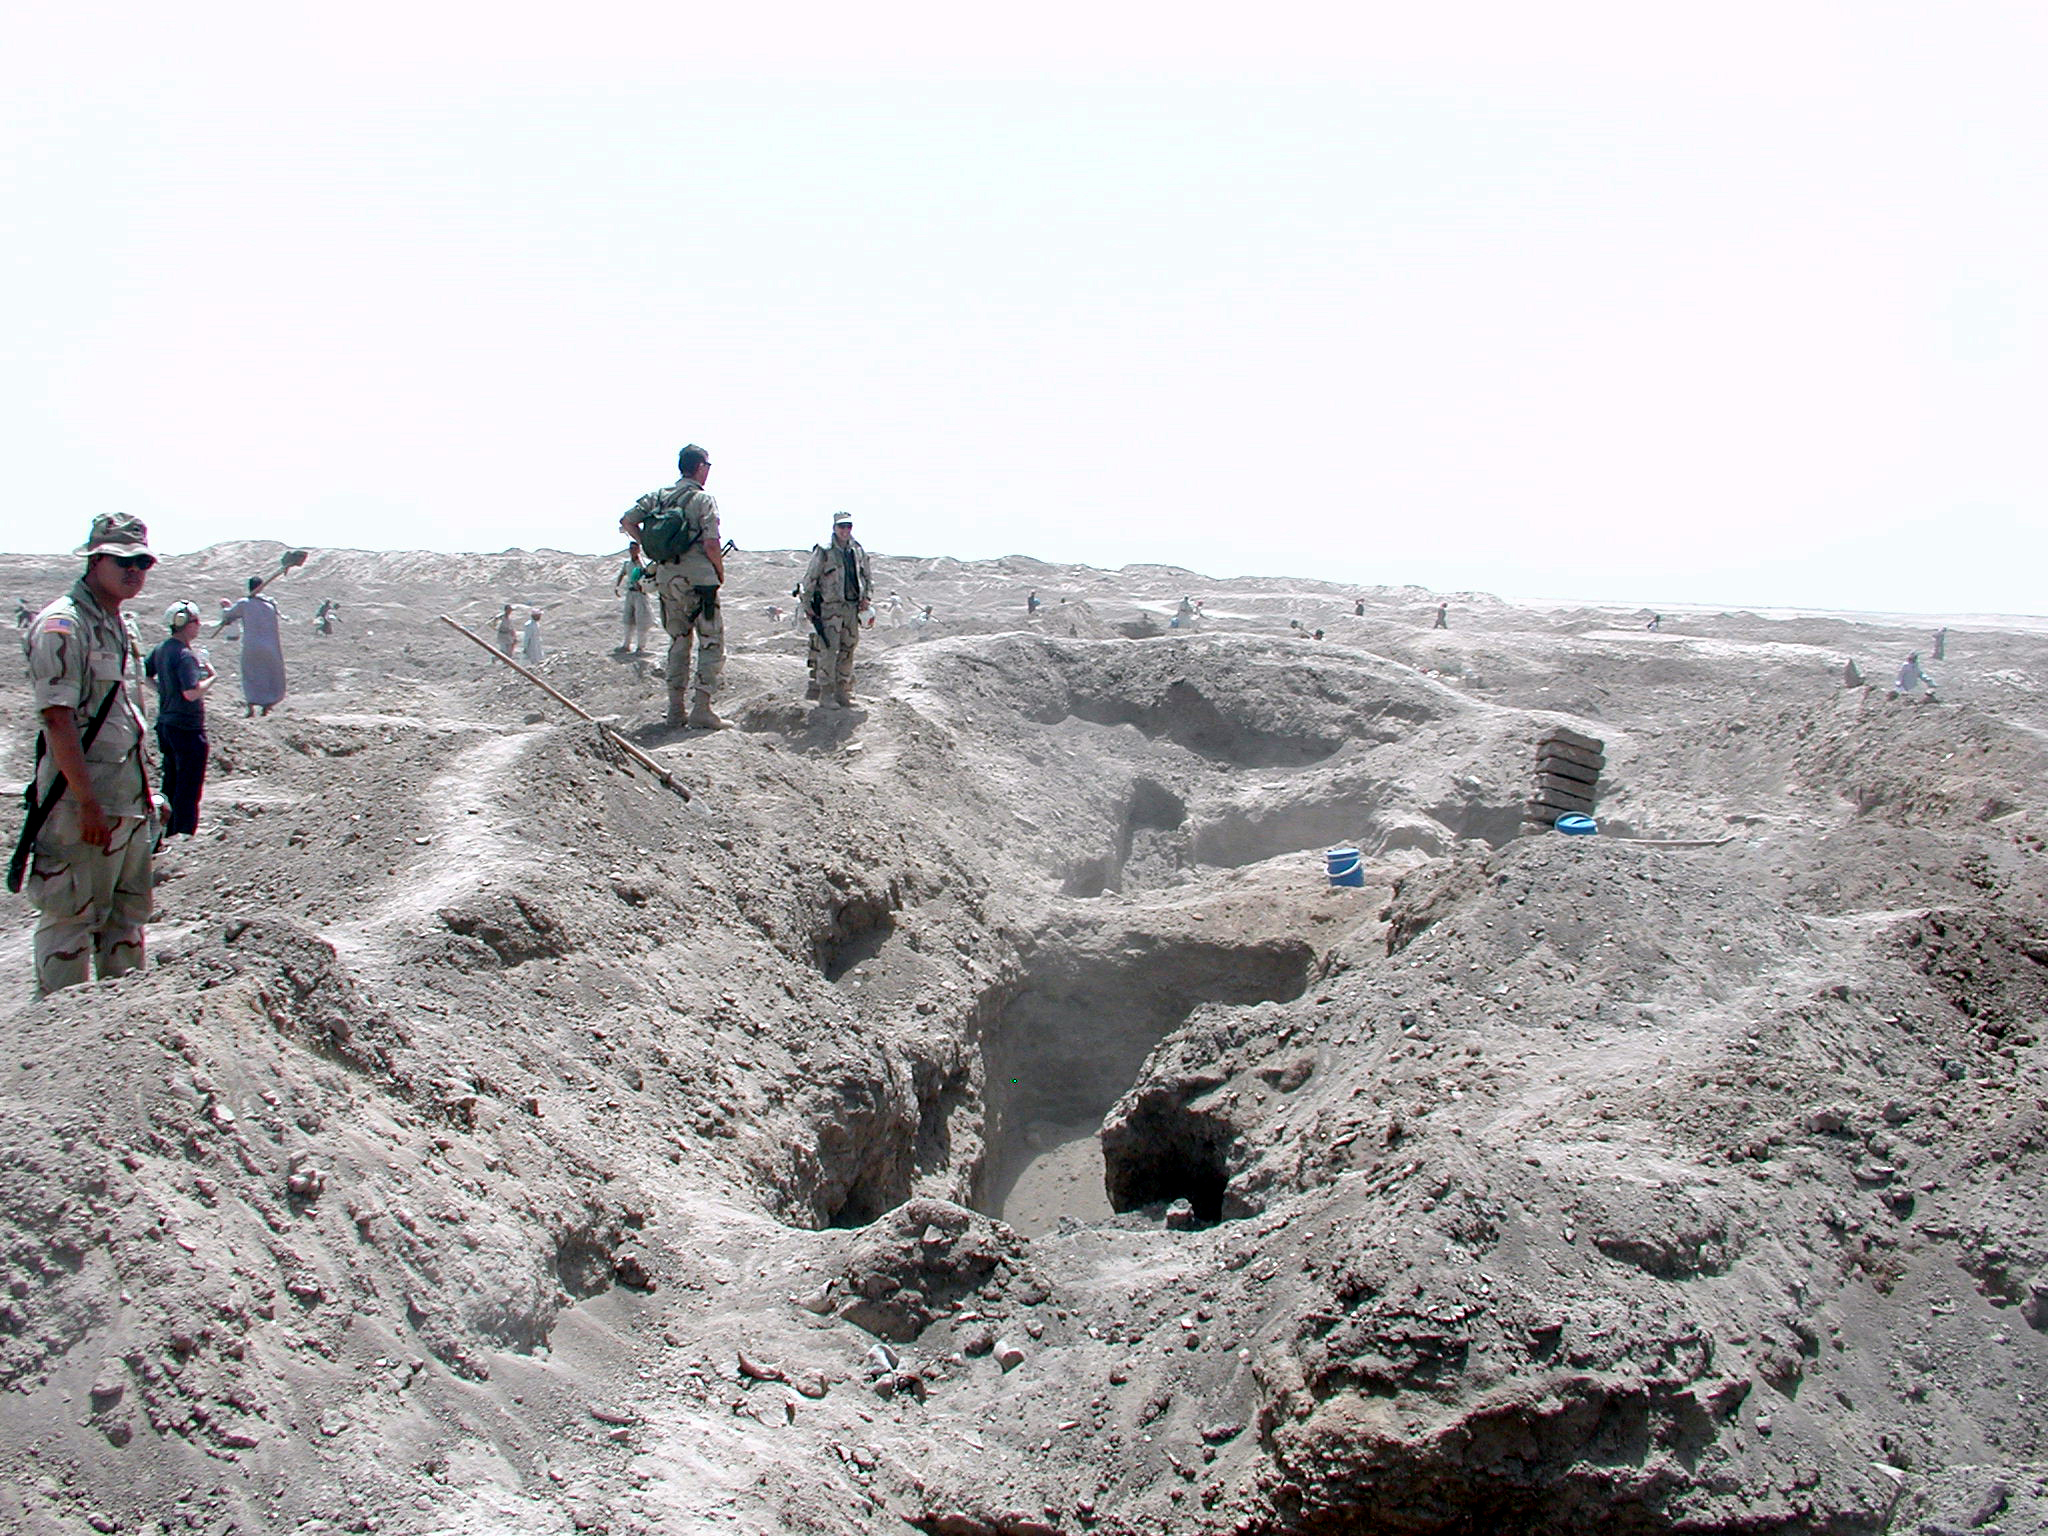 archeology in Isin, badly looted Isin pictured while US troops were stationed in Iraq, a small amount of excavations vrs. lootings have been done